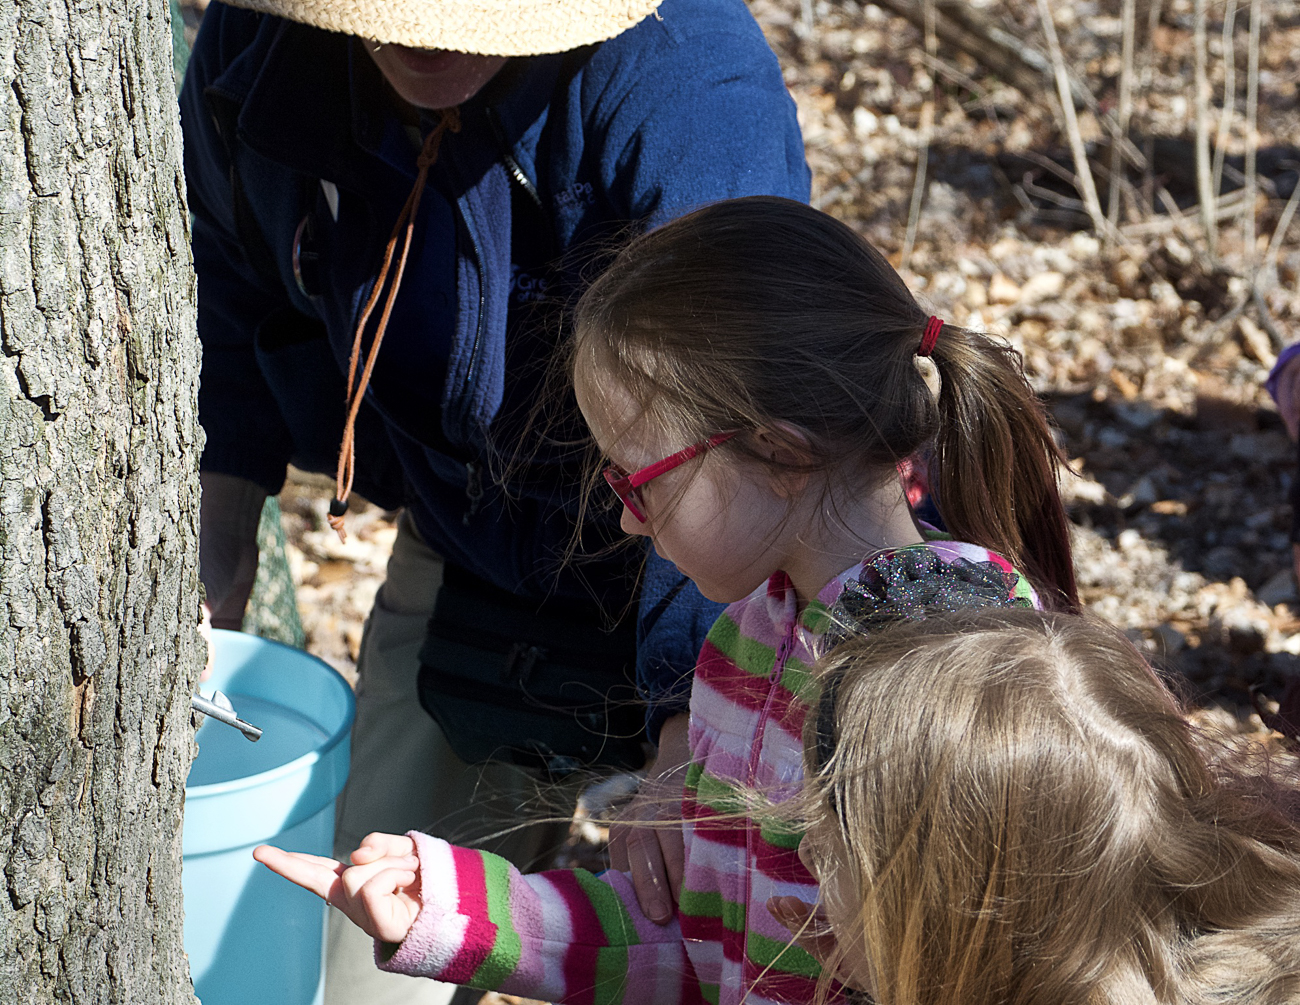 On Saturday (Feb. 24) and Sunday (Feb. 25), Maple Sugar Days will be held at Farbach-Werner Nature Preserve at the Ellenwood Nature Barn. There, you can celebrate the impending coming of spring by making maple syrup. The event includes tests, crafts, demonstrations, and hikes. / Image courtesy of Great Parks of Hamilton County // Published: 2.17.18